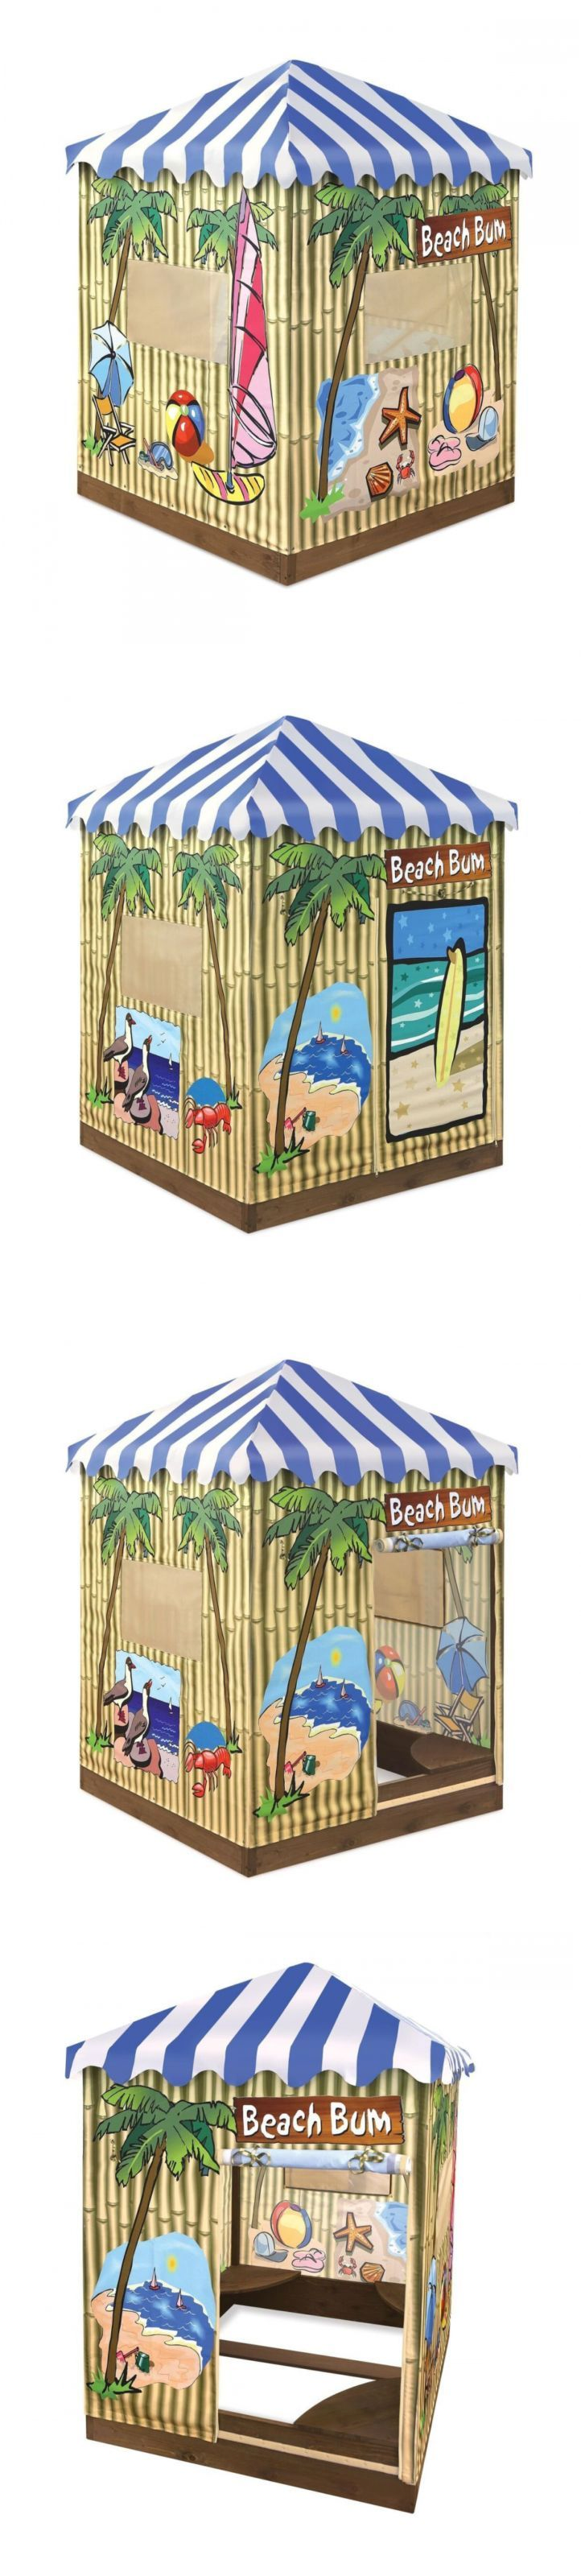 Sandbox Toys and Sandboxes 145990: Outdoor Toddler Playhouse Covered Sandbox With Canopy Sand Pit Kids Wood -> BUY IT NOW ONLY: $176.62 on eBay!